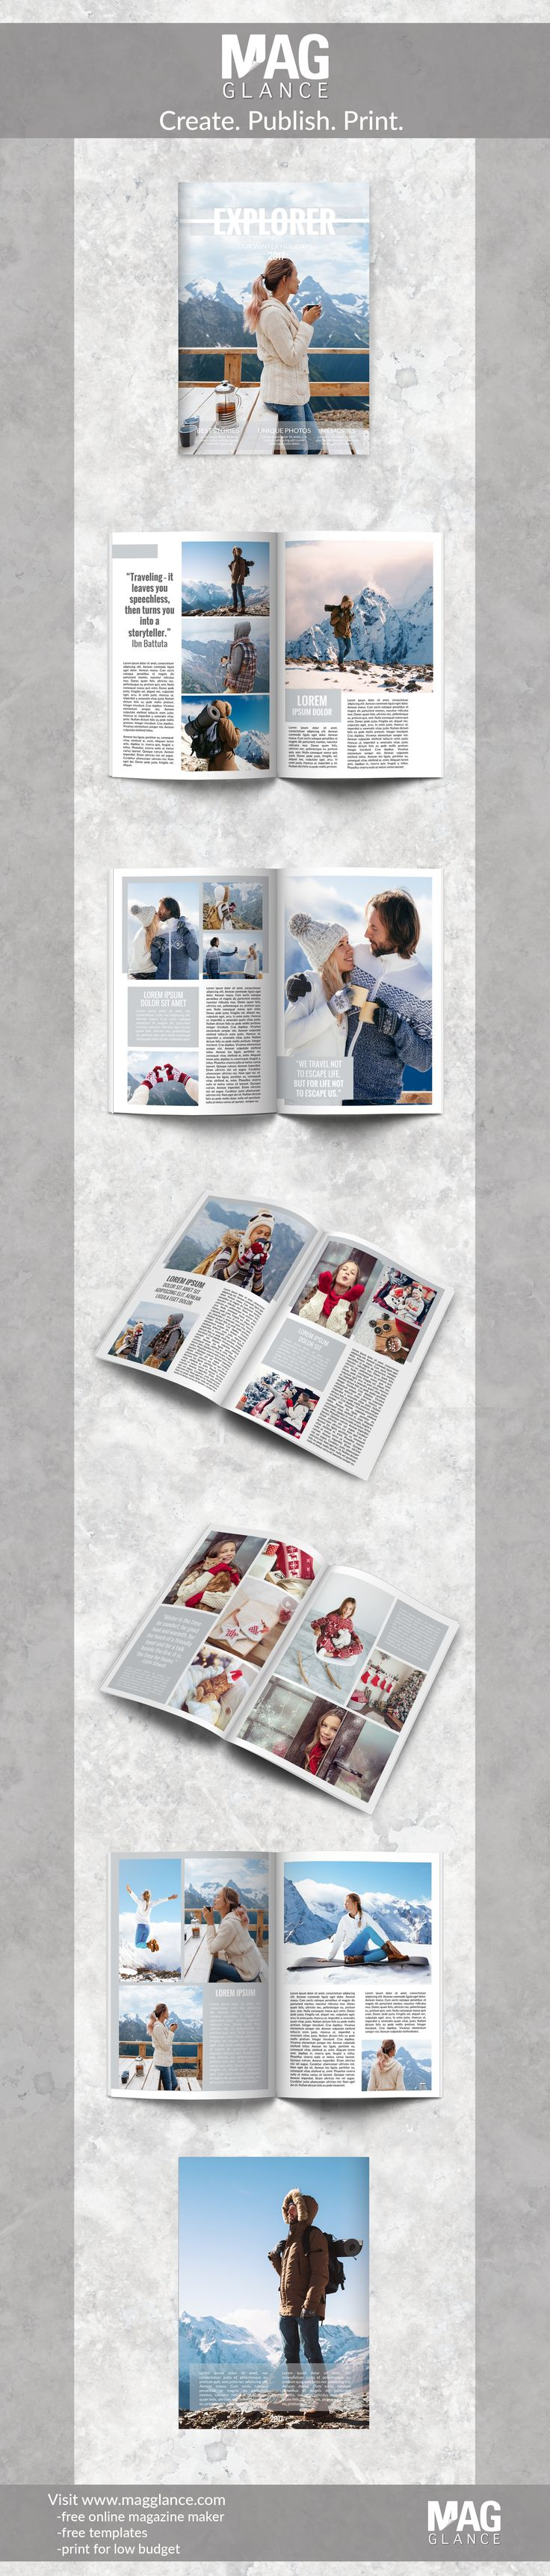 Create online a photo album and print it for low budget - register now for free at https://en.magglance.com/online-photo-album-maker-software #photo album #photos #magazine #photo-album-maker-software #example #design #template #make #create #layout #gift #online